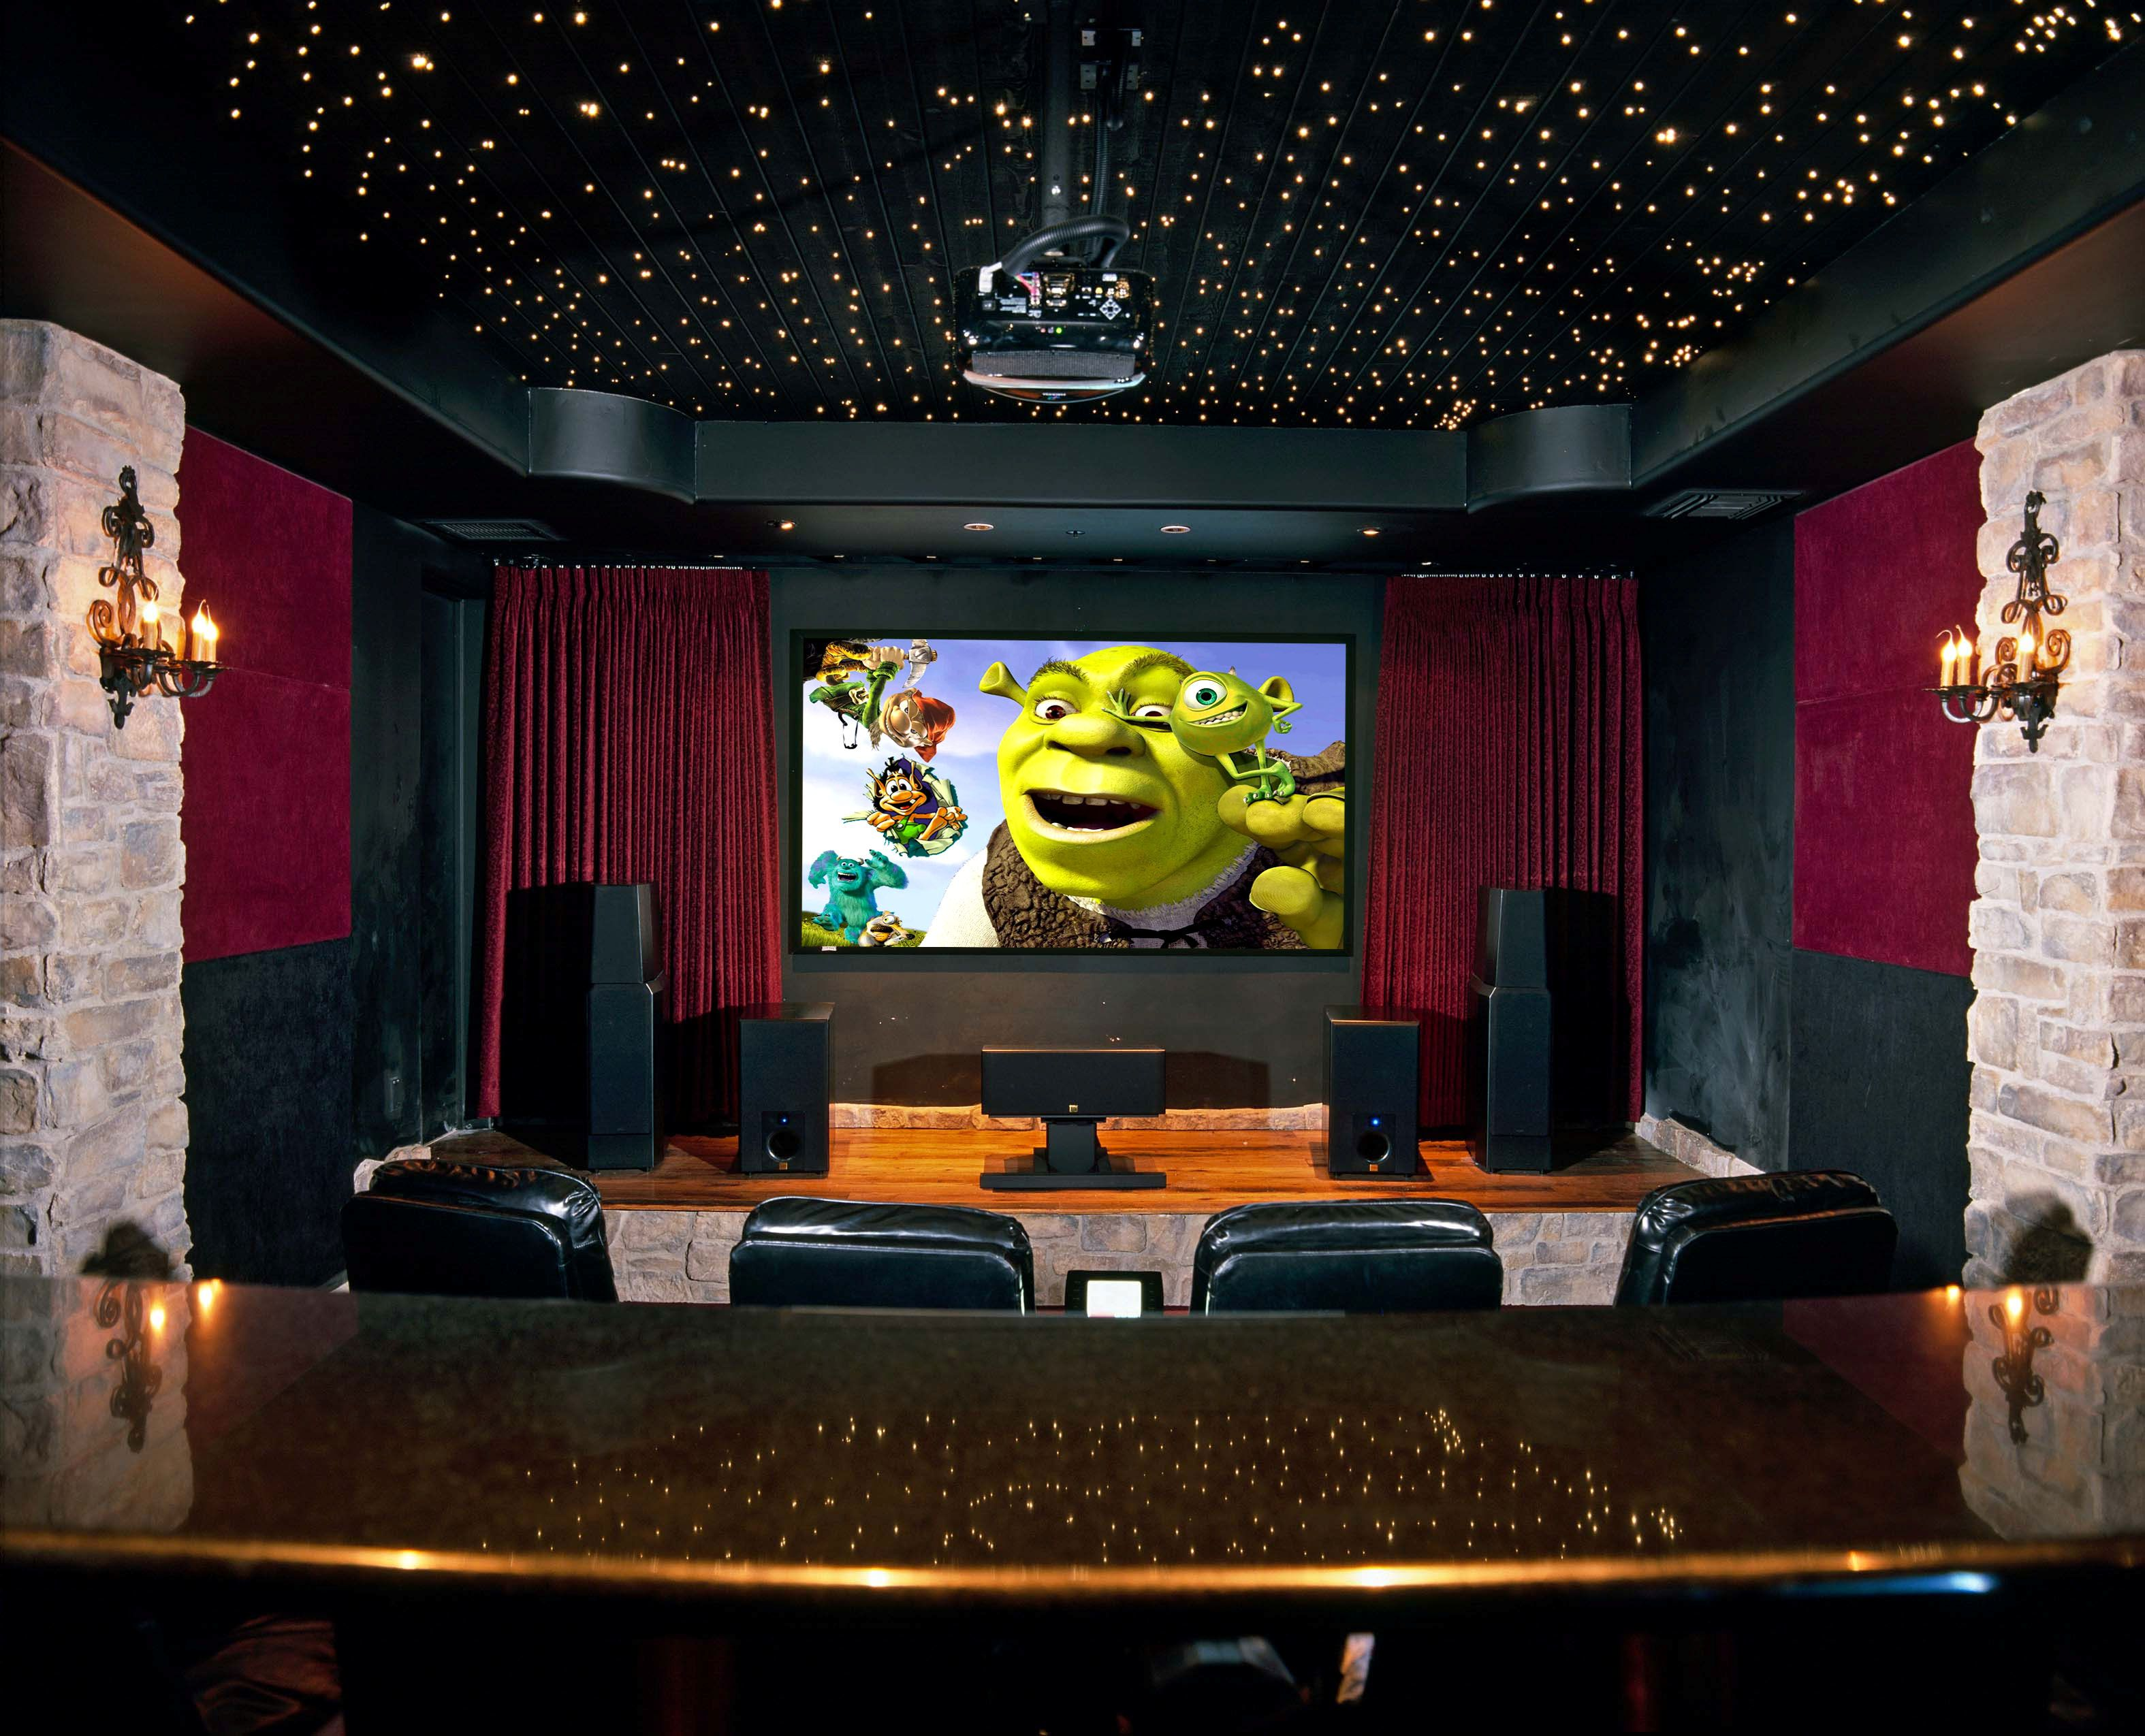 decorating beautiful home theater room with ceiling design full of home theater designs ideas - Home Theater Rooms Design Ideas